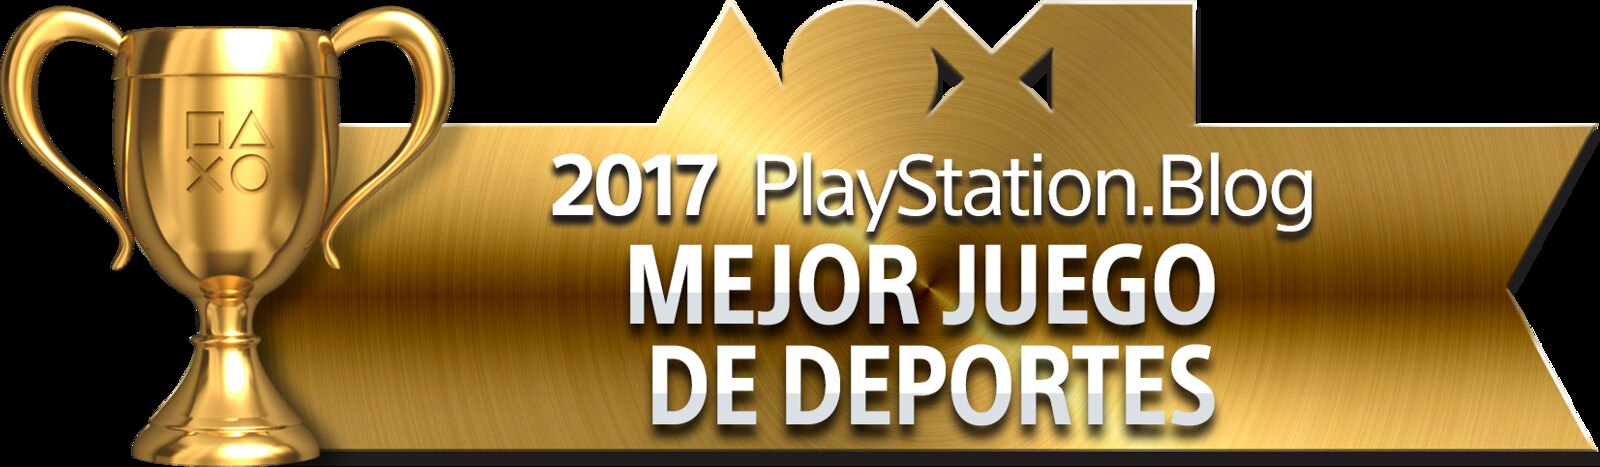 PlayStation Blog Game of the Year 2017 - Best Sports Game (Gold)